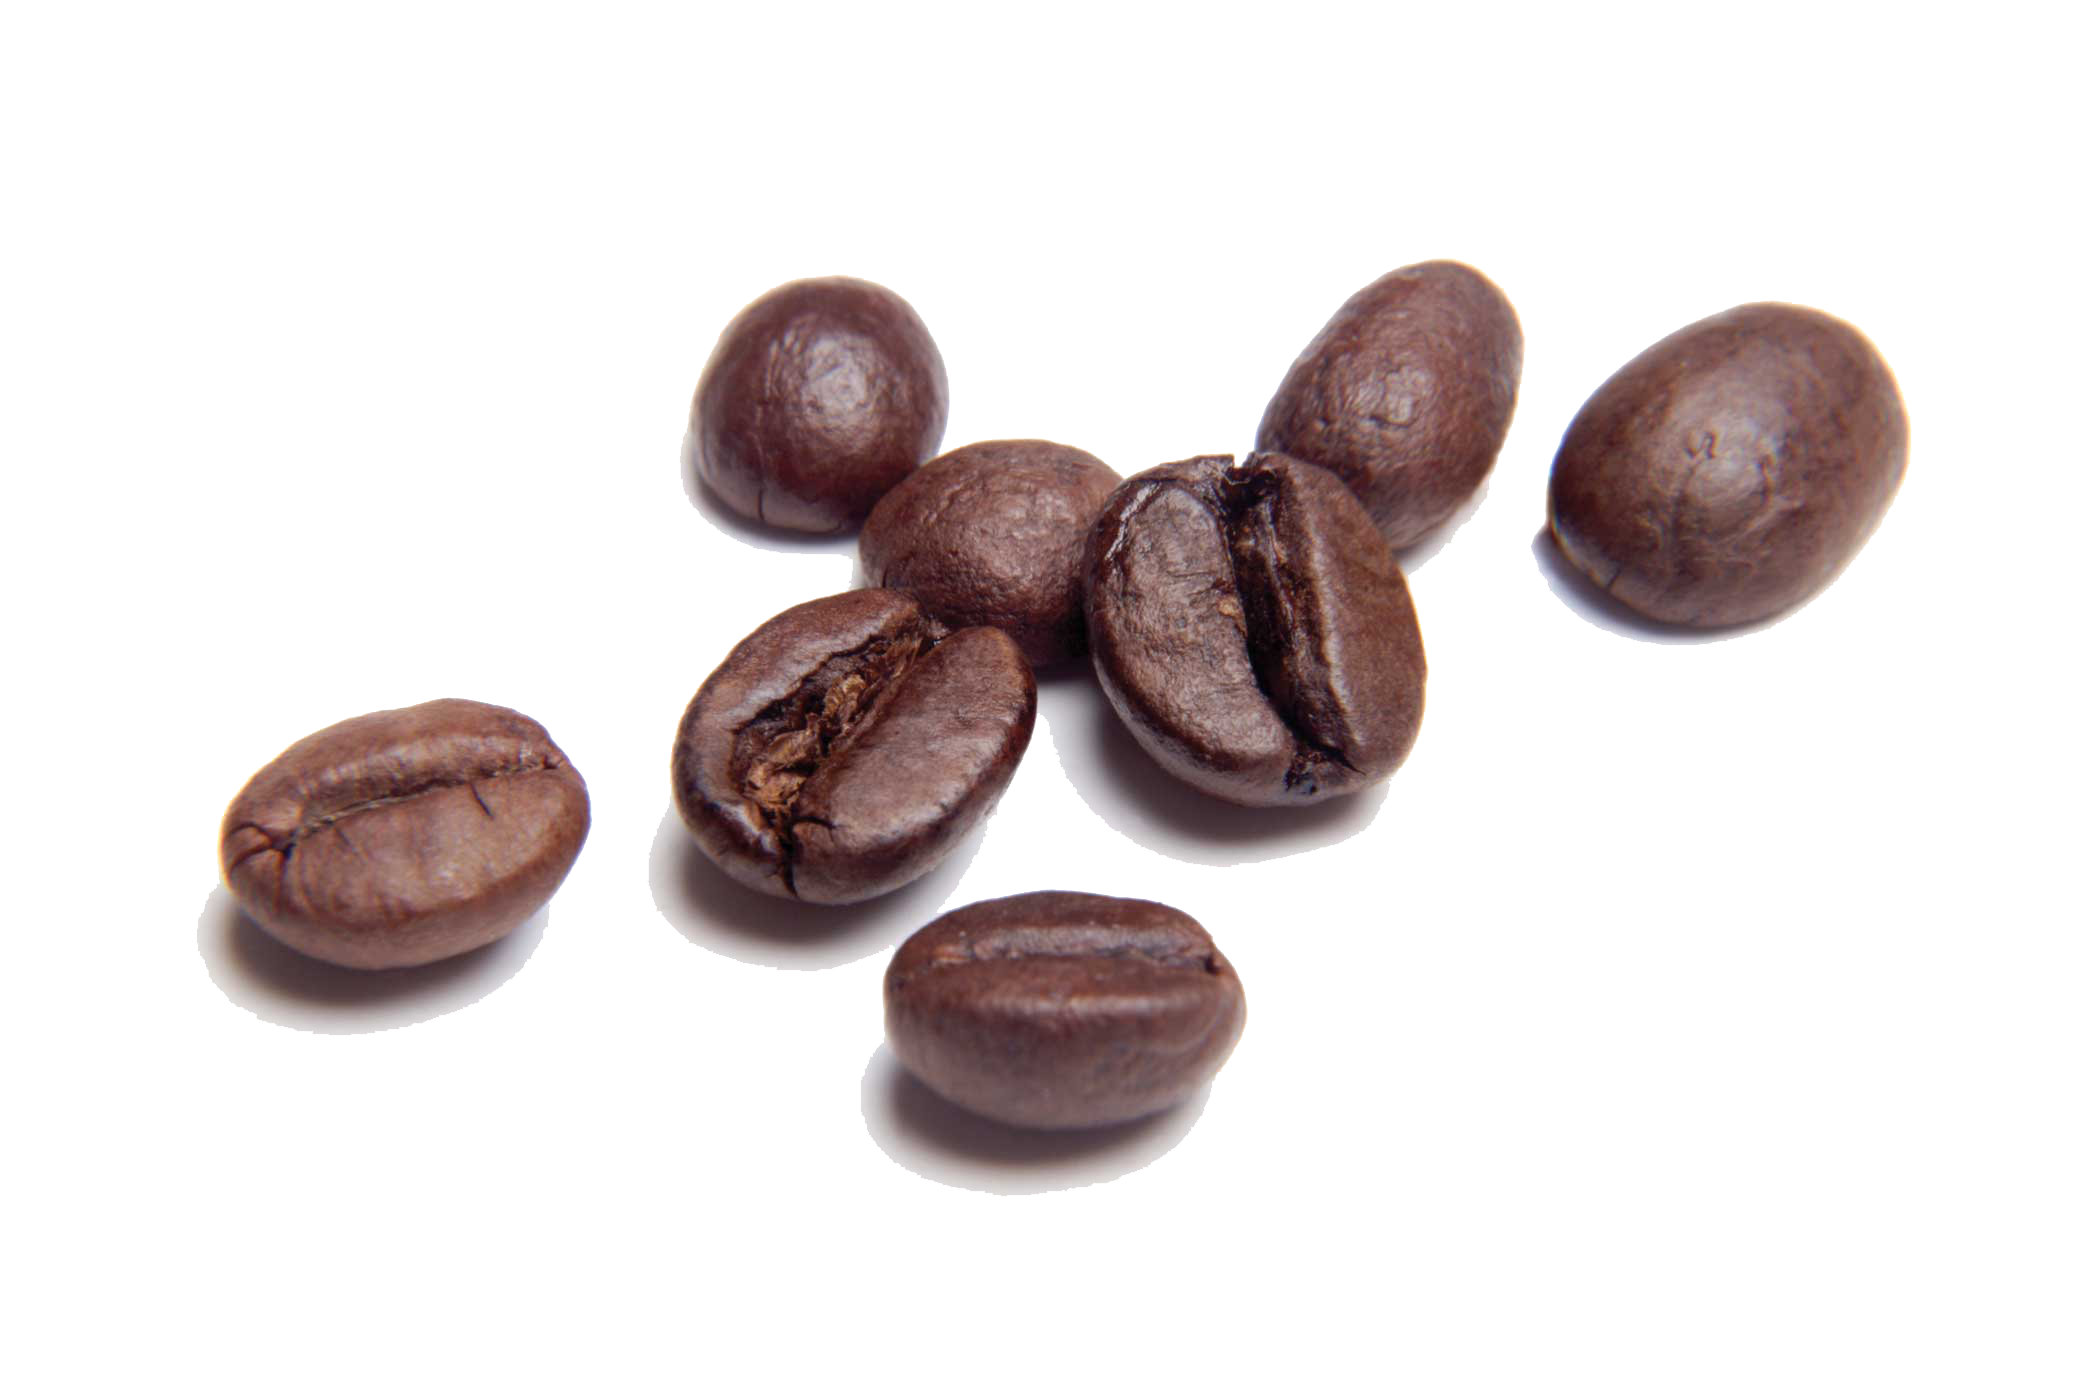 PNG File Name: Coffee Beans Transparent PNG - Coffee Beans PNG